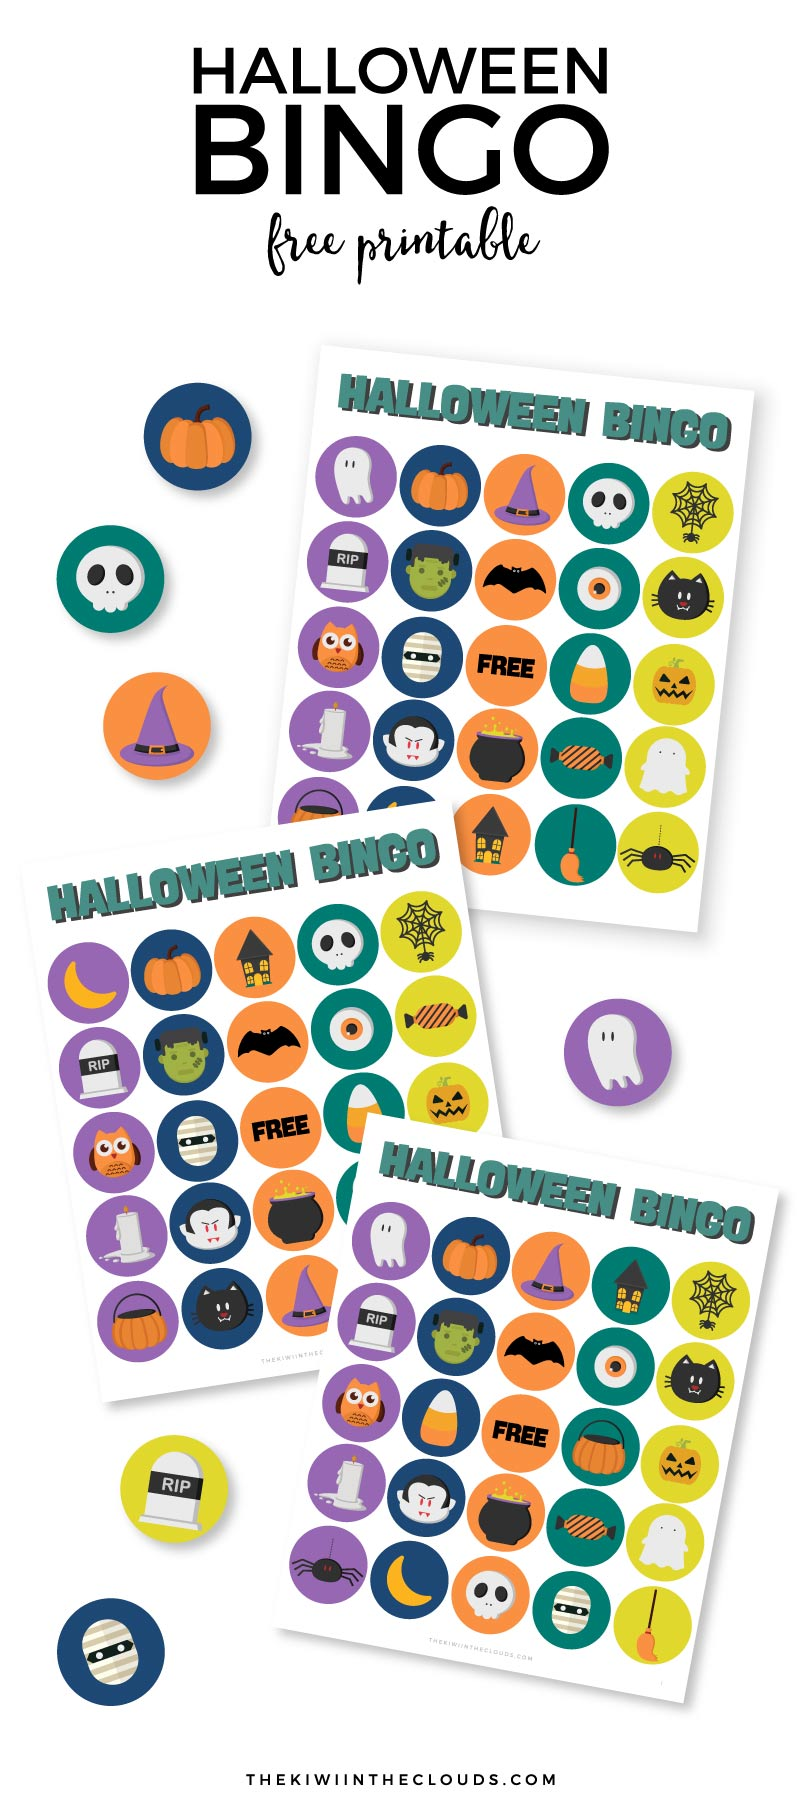 photo about Halloween Bingo Printable referred to as The Perfect Halloween Bingo Playing cards for Small children (Free of charge Printable)